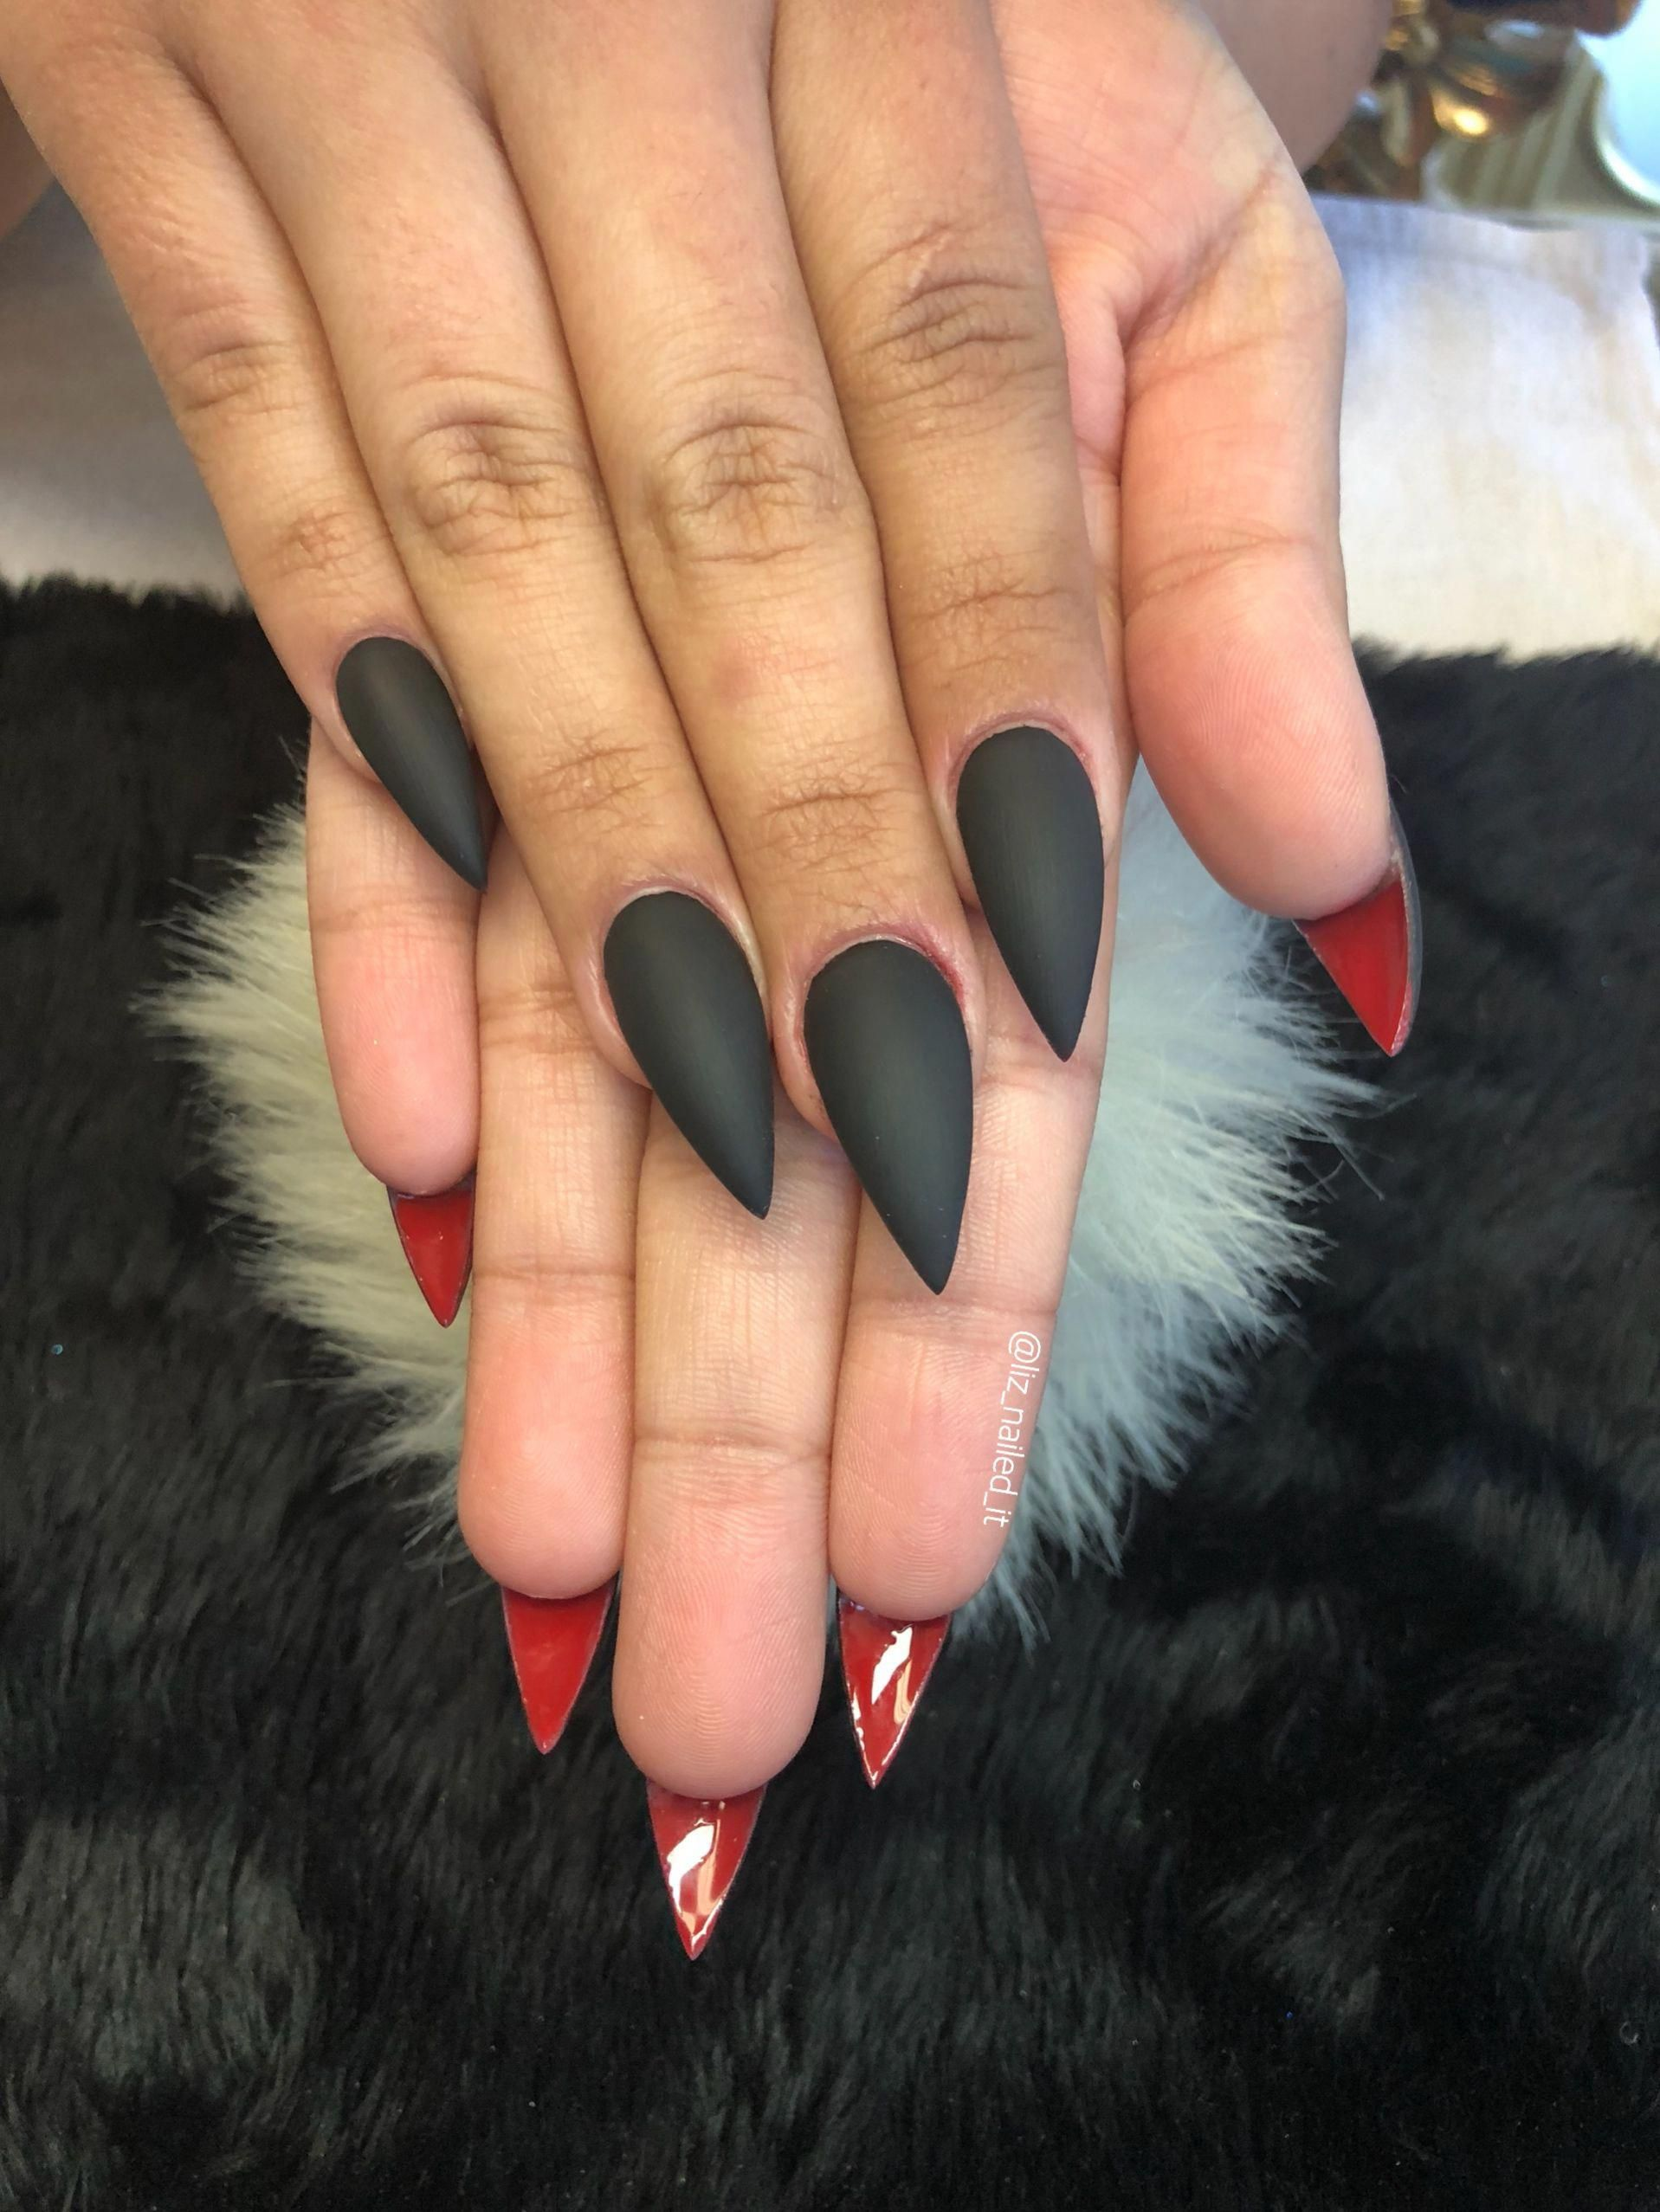 Faded French Nails Coffin Frenchtipnaildesigns Red Bottom Nails Red Ombre Nails French Fade Nails